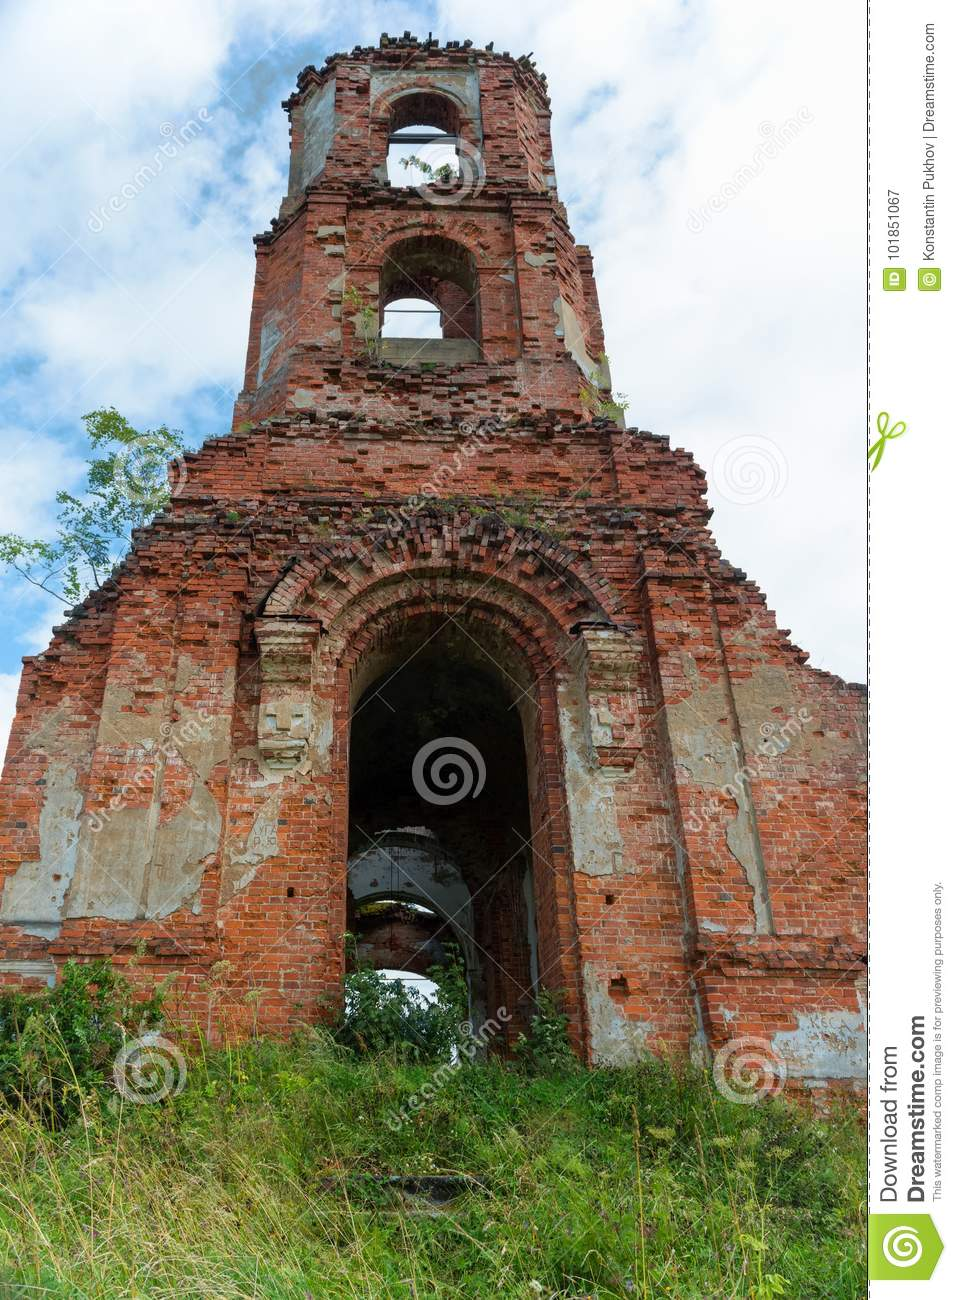 Old Belfry stock image  Image of atheism, color, brick